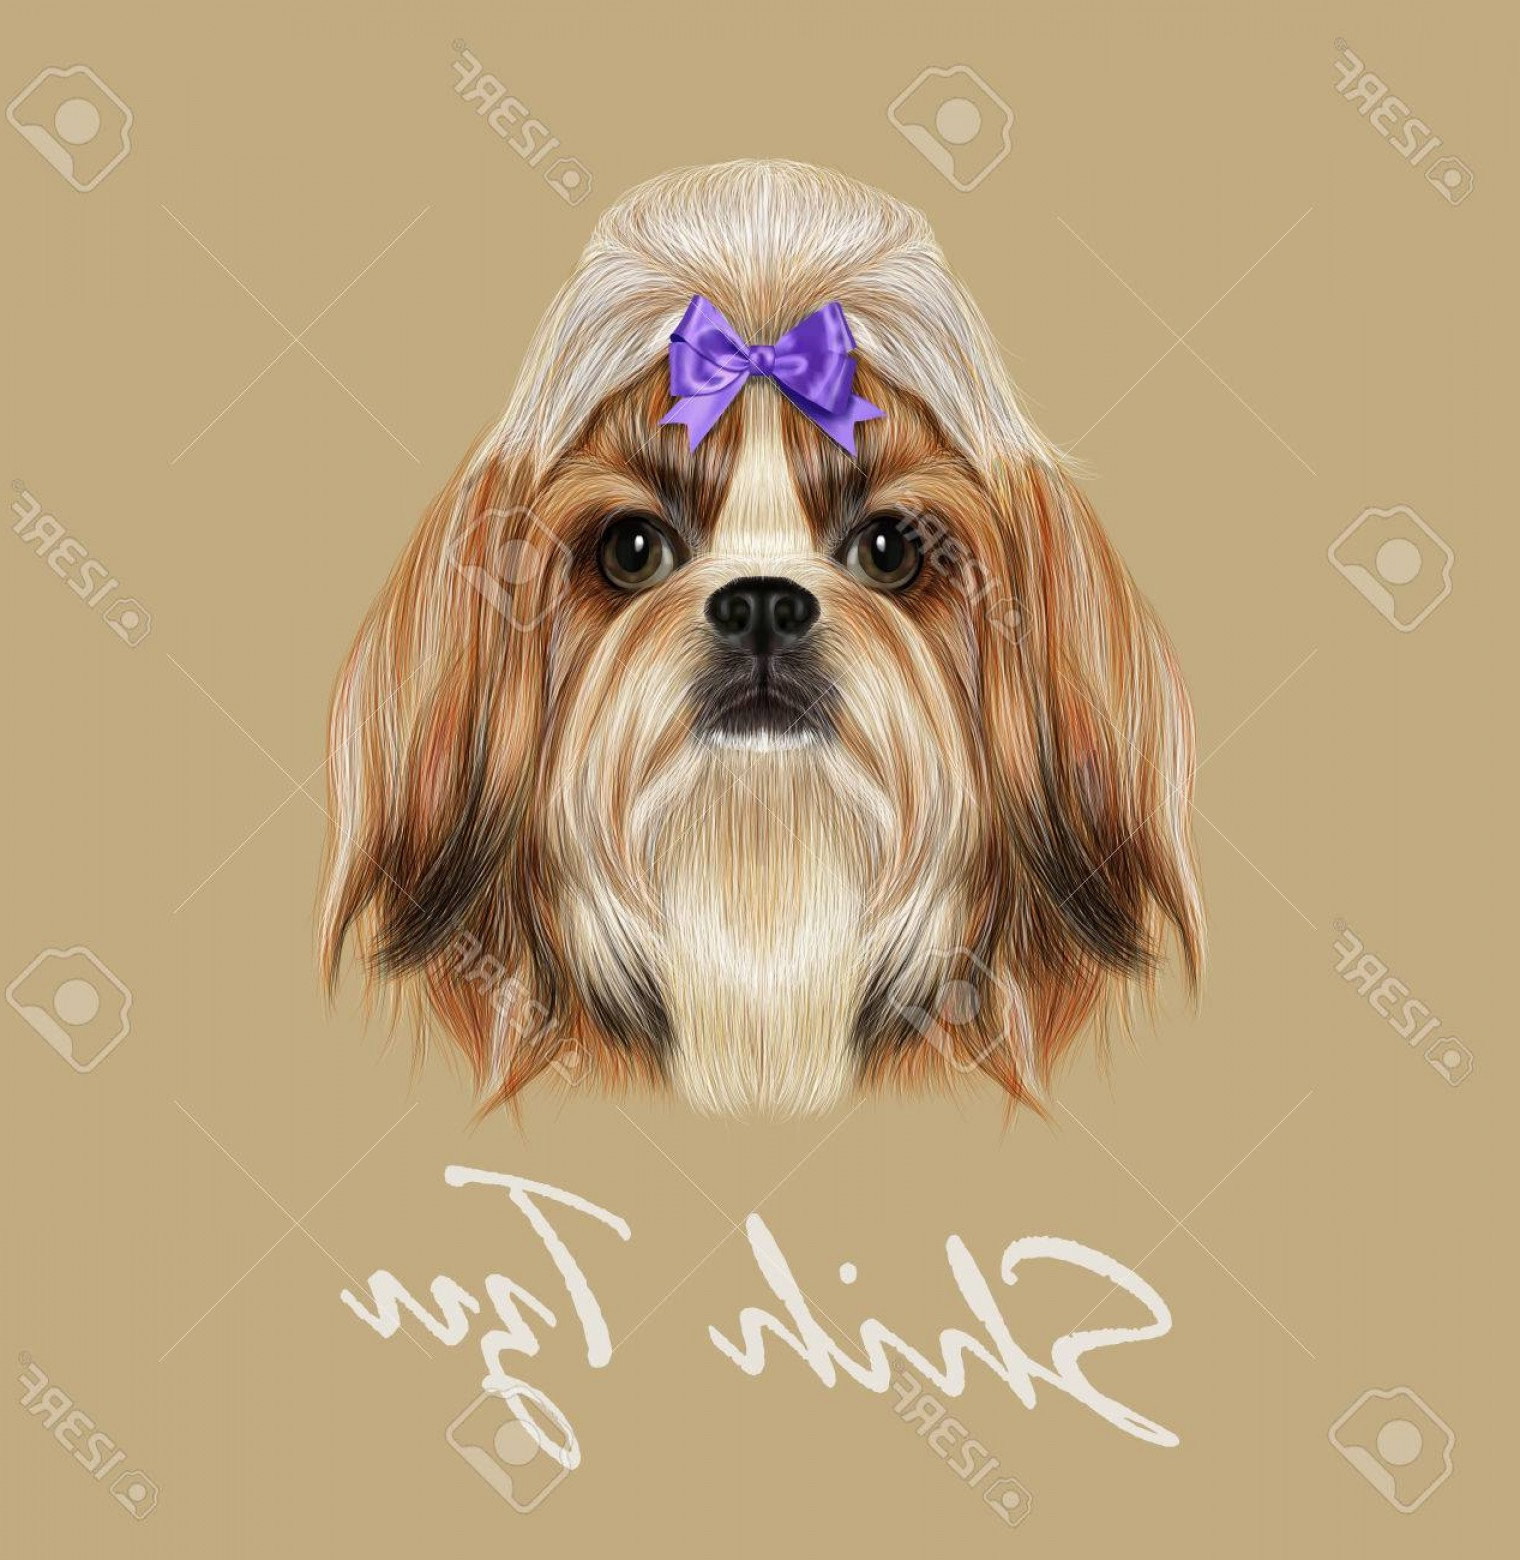 Shih Tzu Vector Siluete: Photostock Vector Vector Illustrated Portrait Of Shih Tzu Dog Domestic Toy Dog Breed Tricolor Dog With Violet Bow